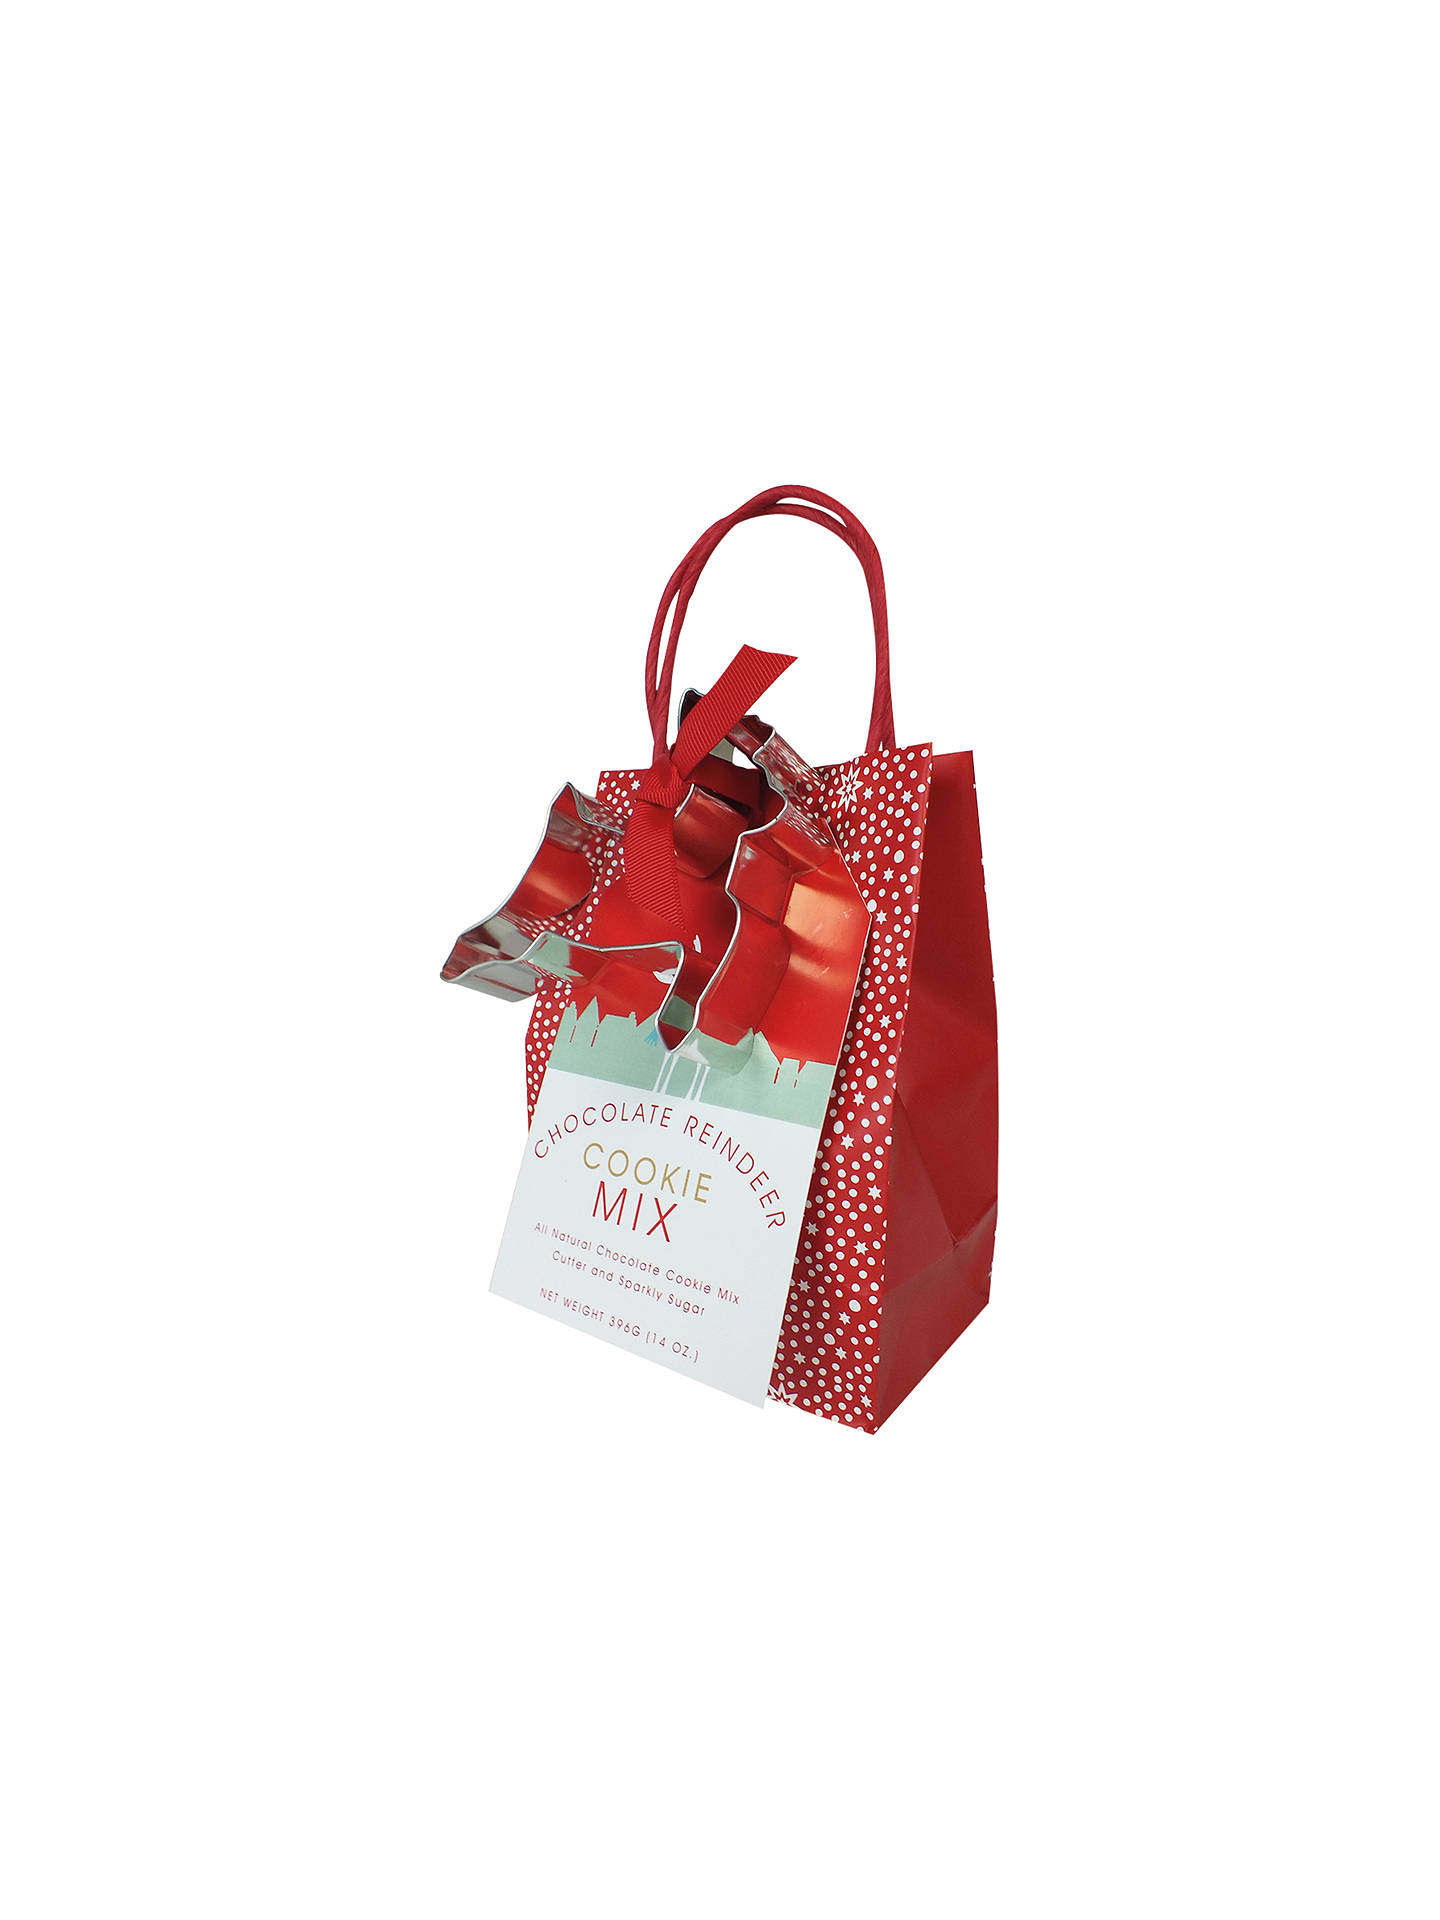 Buy Create A Treat Chocolate Reindeer Cookie Mix Online at johnlewis.com